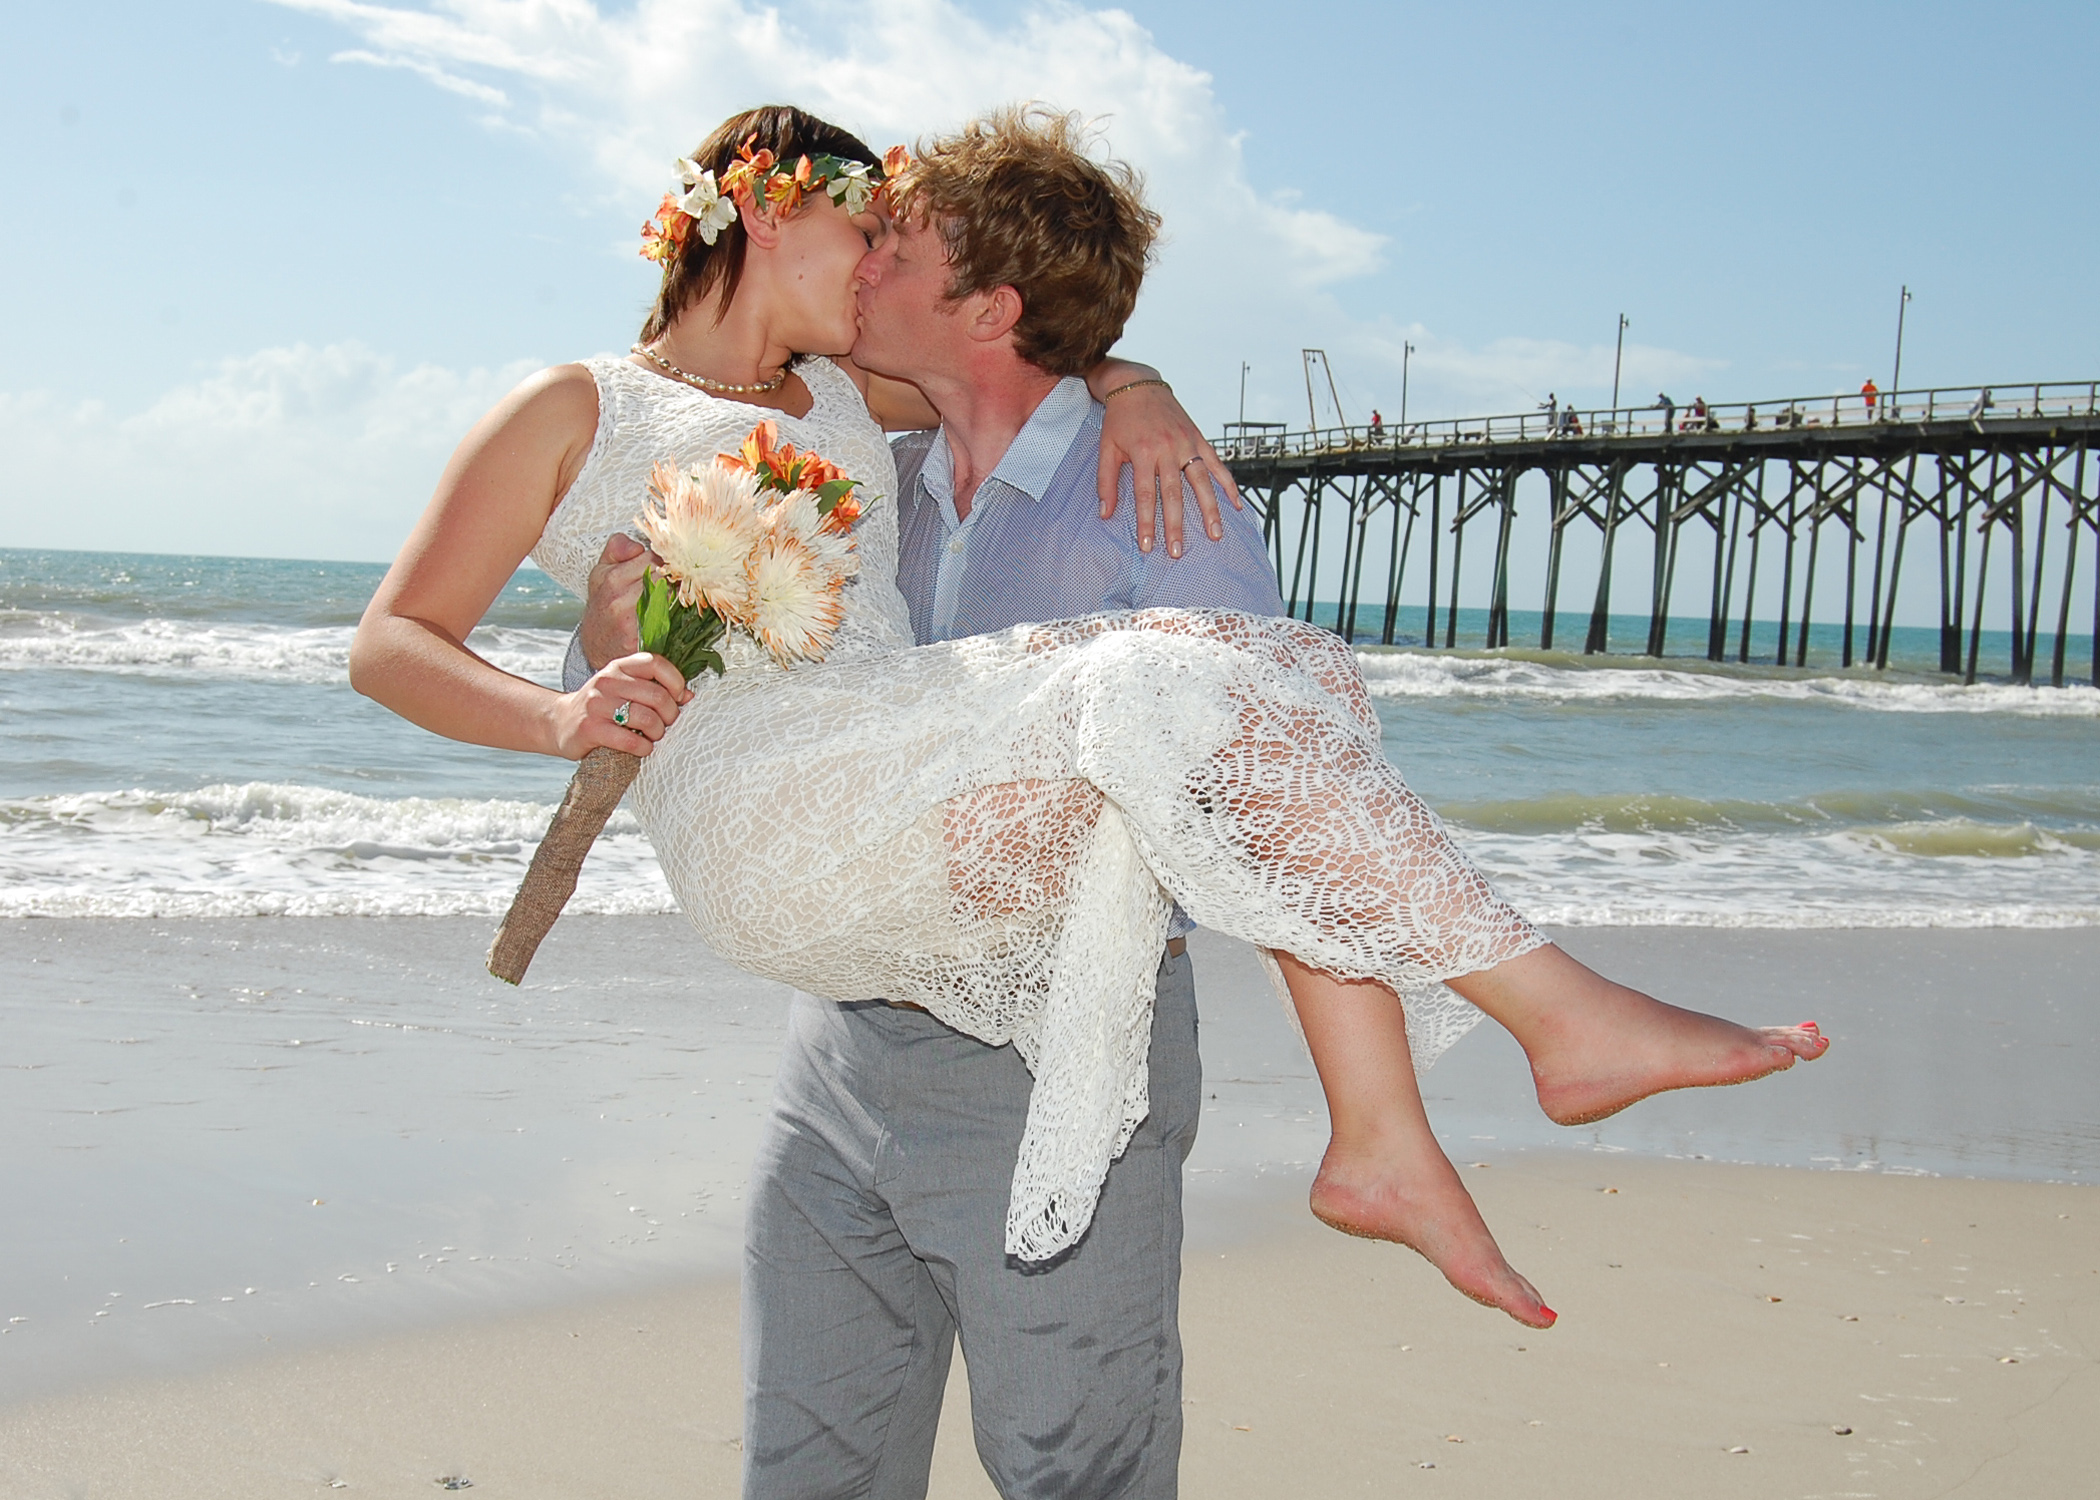 - Groom picks up his bride at the North end of Carolina Beach, NC. Fishing pier and ocean in the background. Bride is holding bouquet and wearing a flower Crown. Billy Beach Photography.